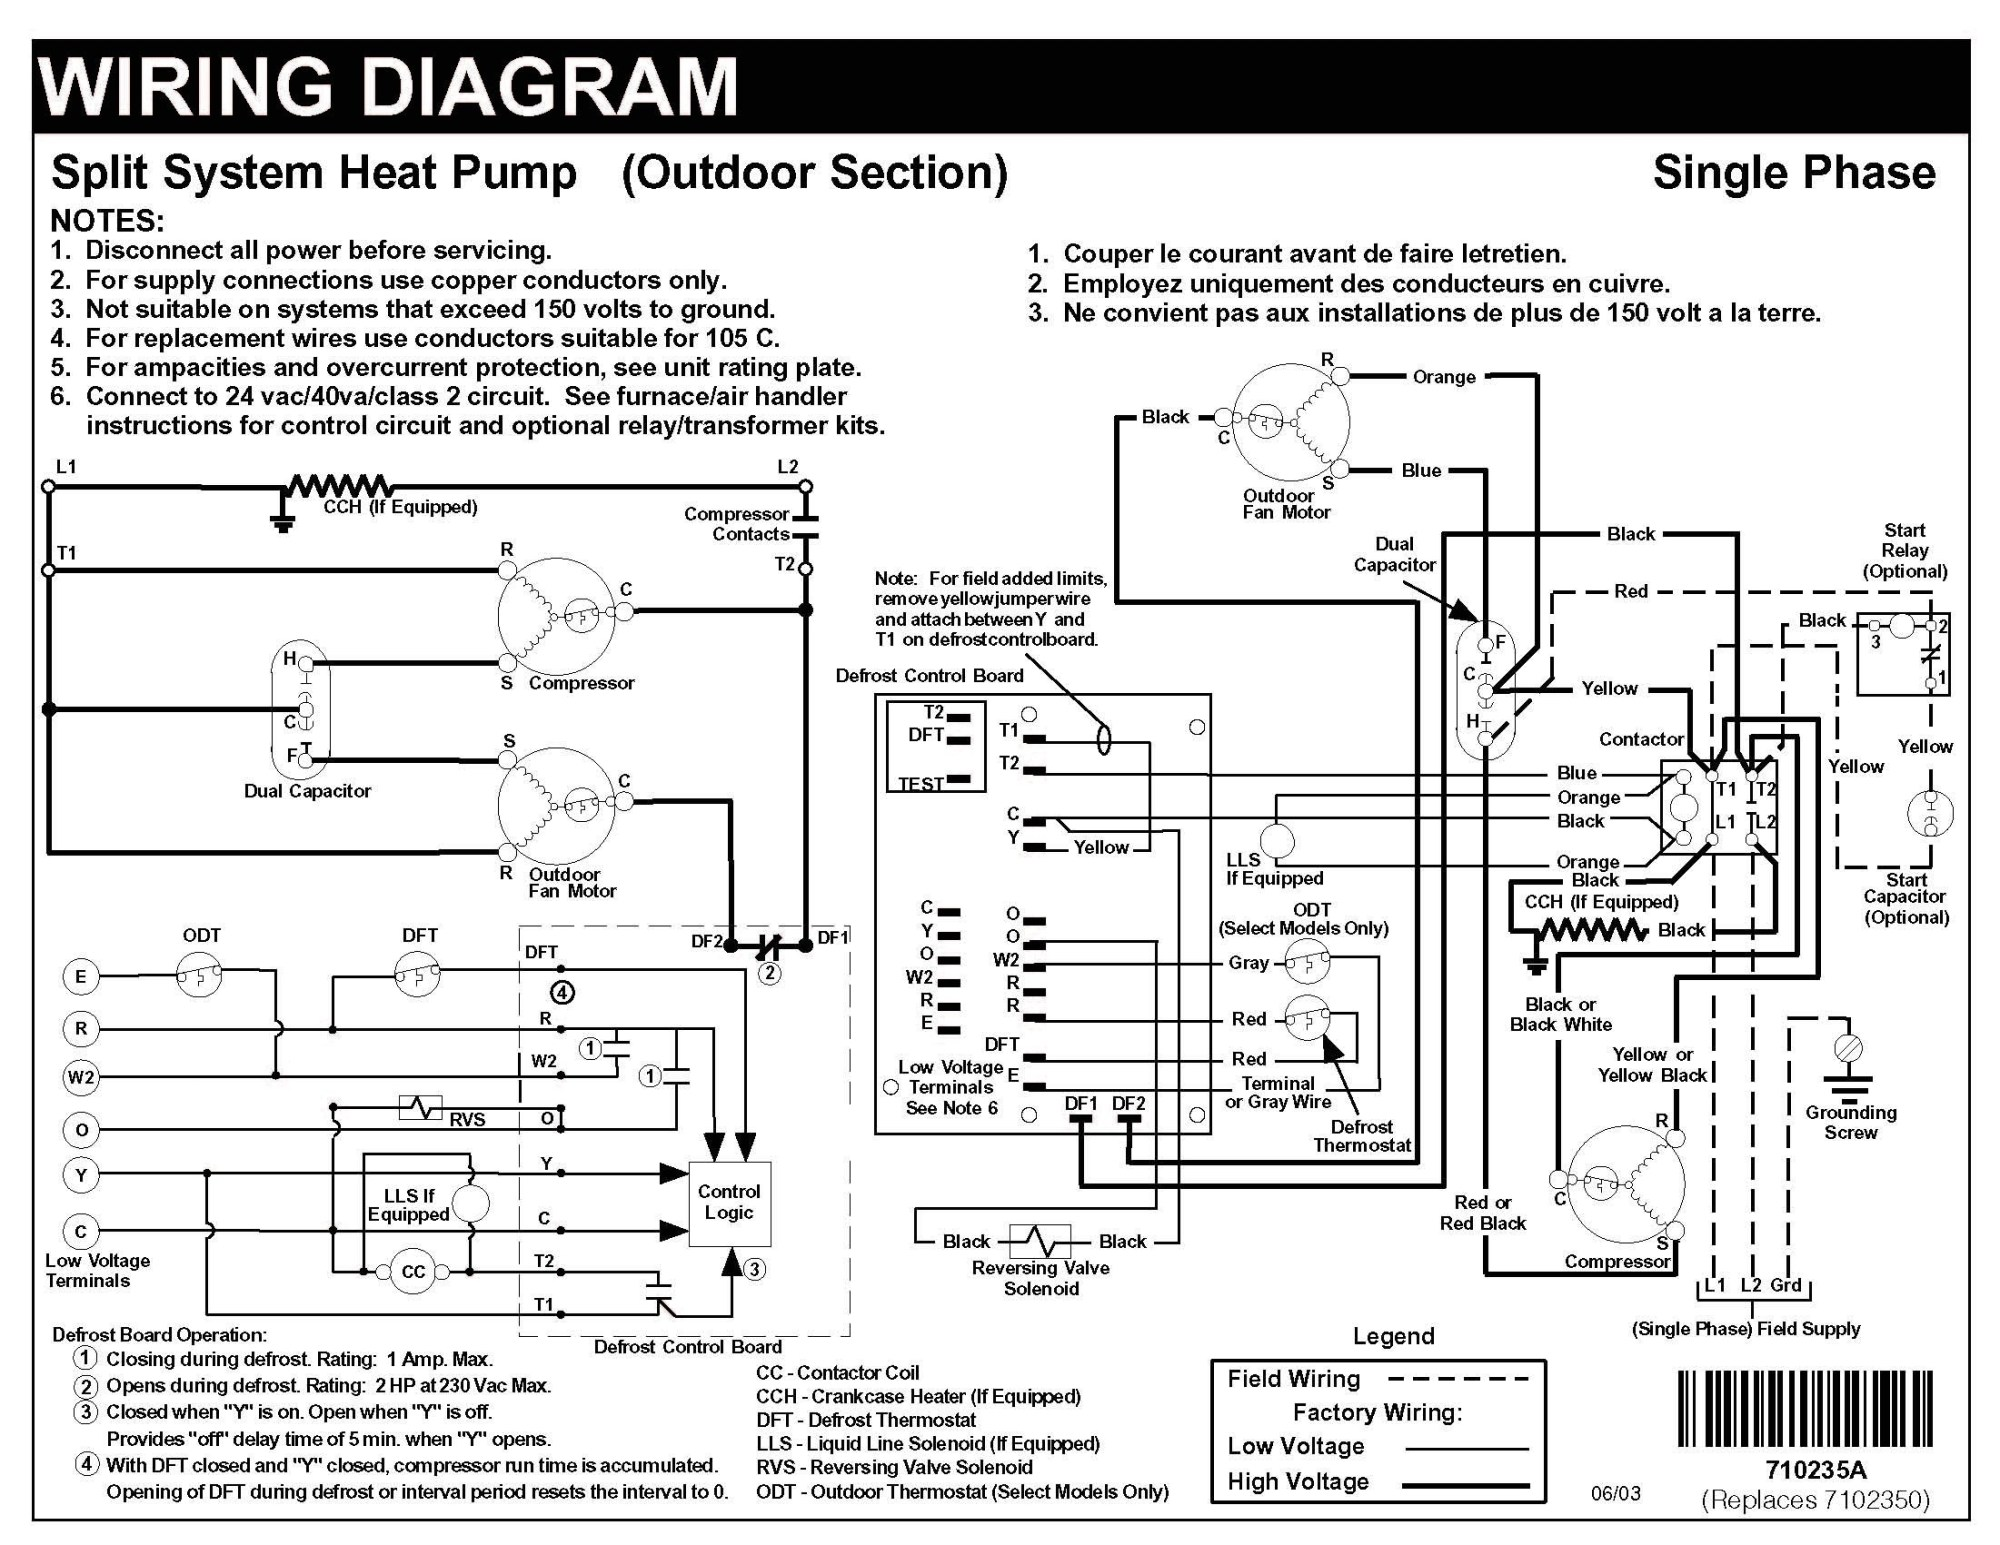 hight resolution of luxaire heat pump wiring diagram wiring diagram toolboxold luxaire heat pump wiring schematics wiring diagram paper